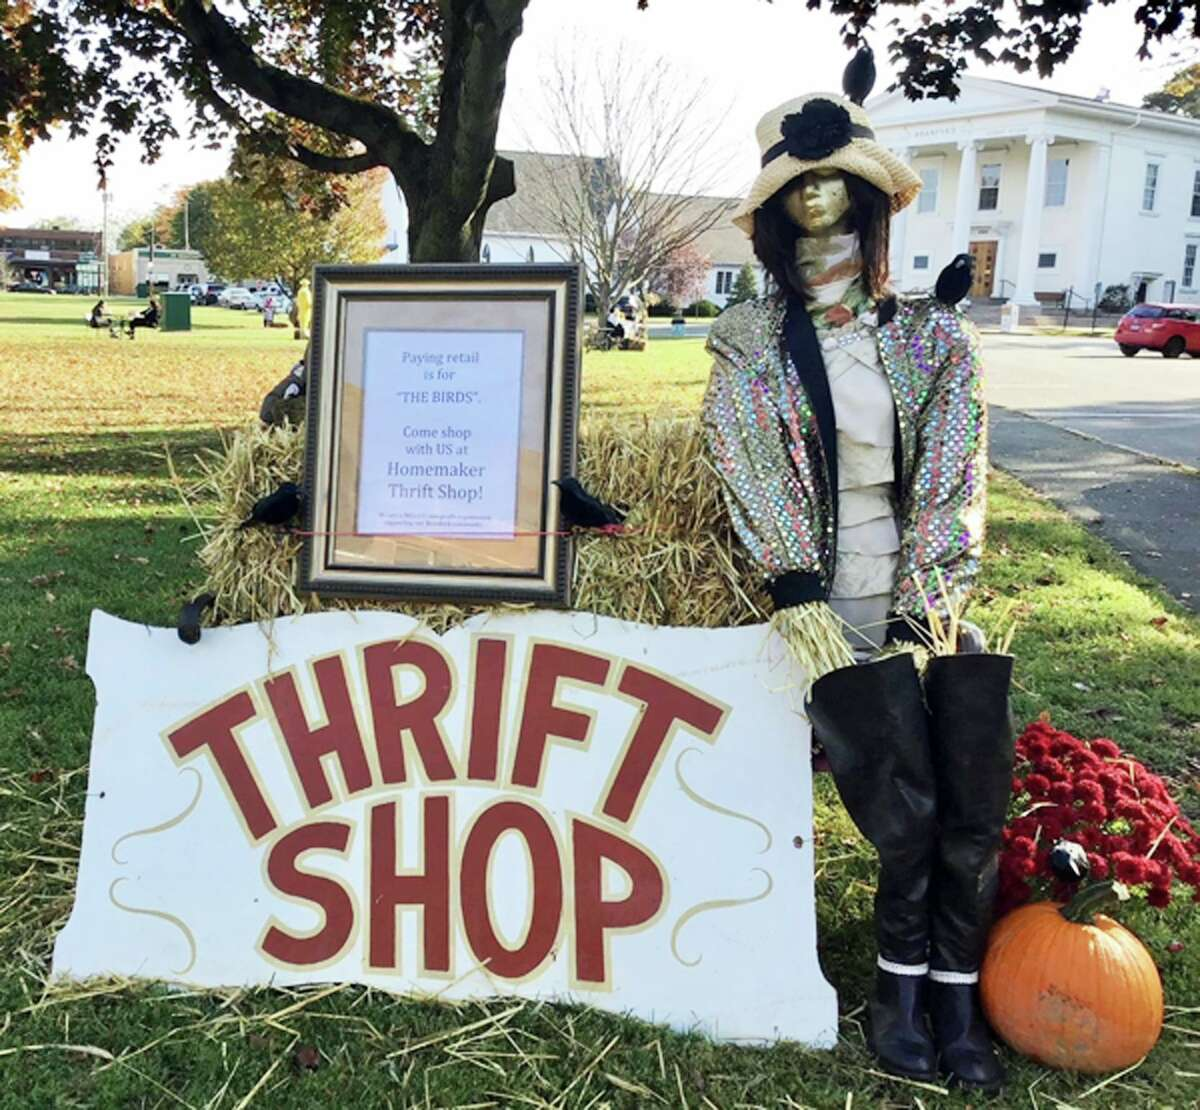 A scarecrow from the Homemaker Thrift Shop from a previous Scarecrows on the Green event.